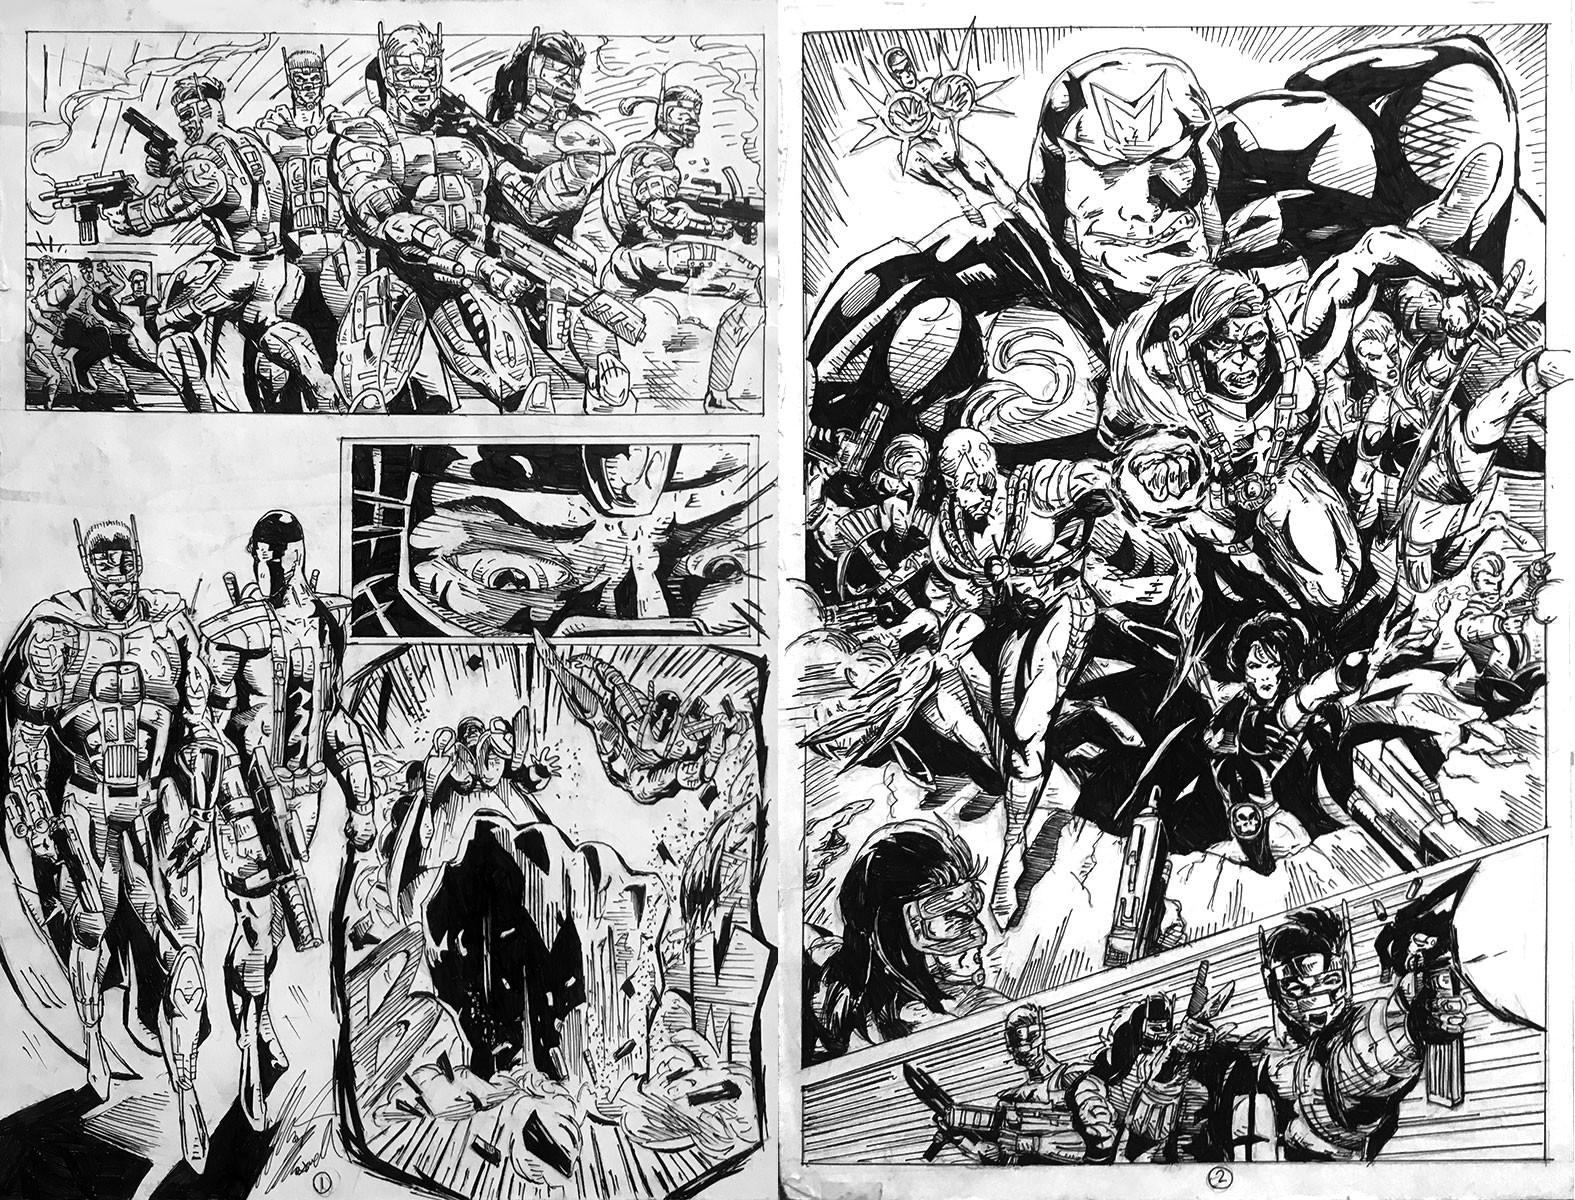 This was a 2-page spread done as a submission to Image comics years ago when they were a single entity as a publisher. This was before I had seen anyone other than Jim Lee draw the WildC.A.T.S.